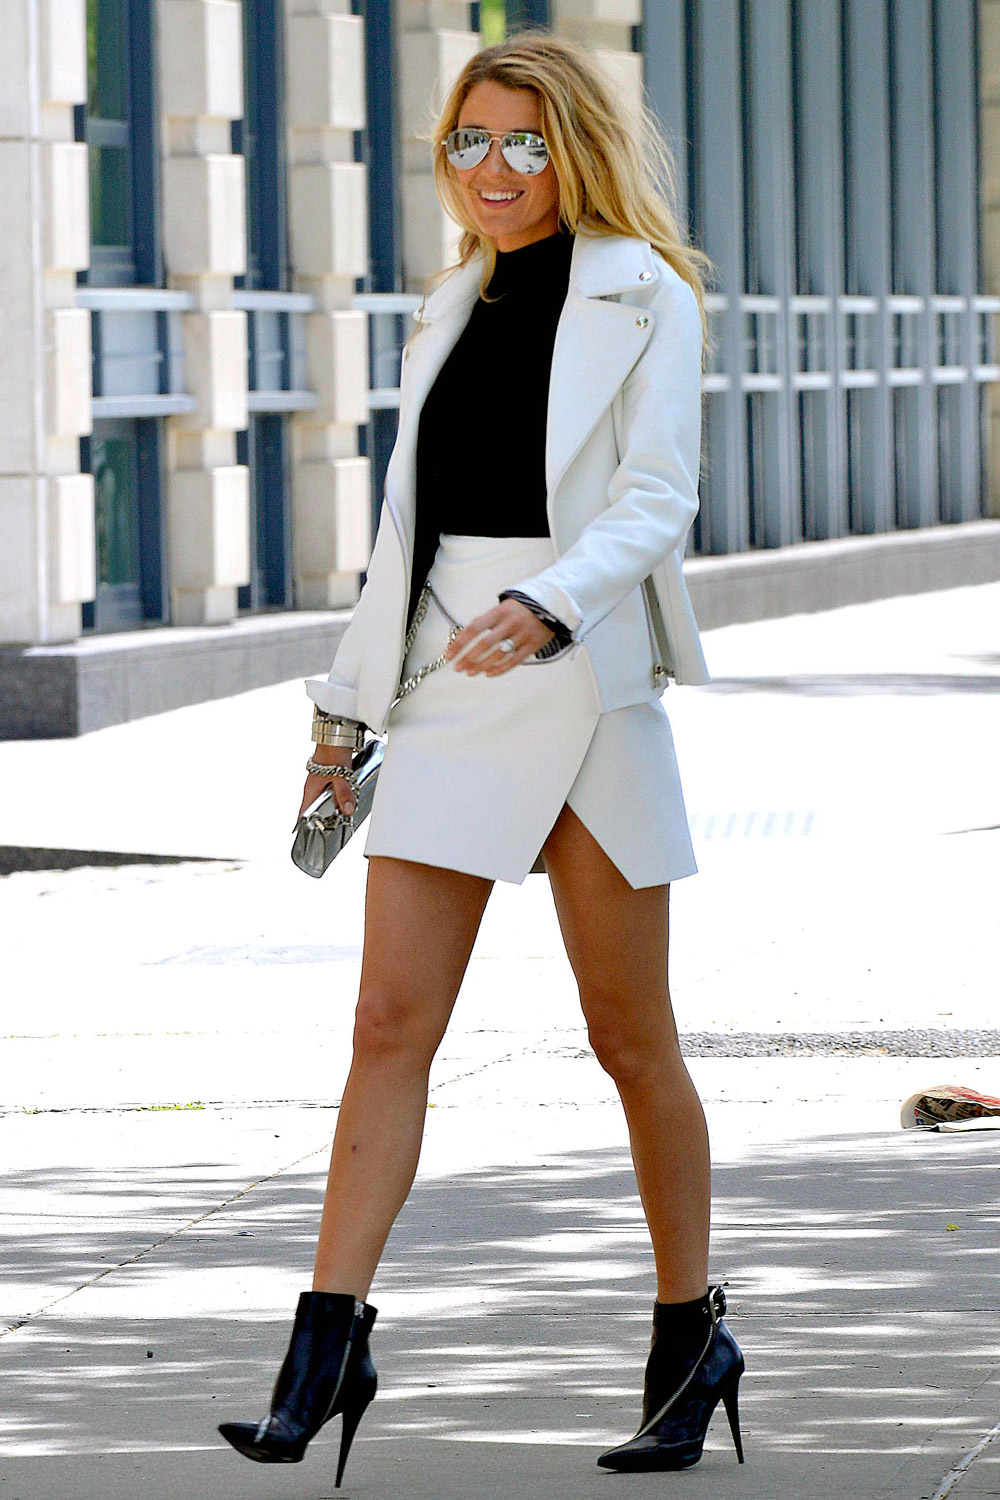 Image result for blake lively outfits